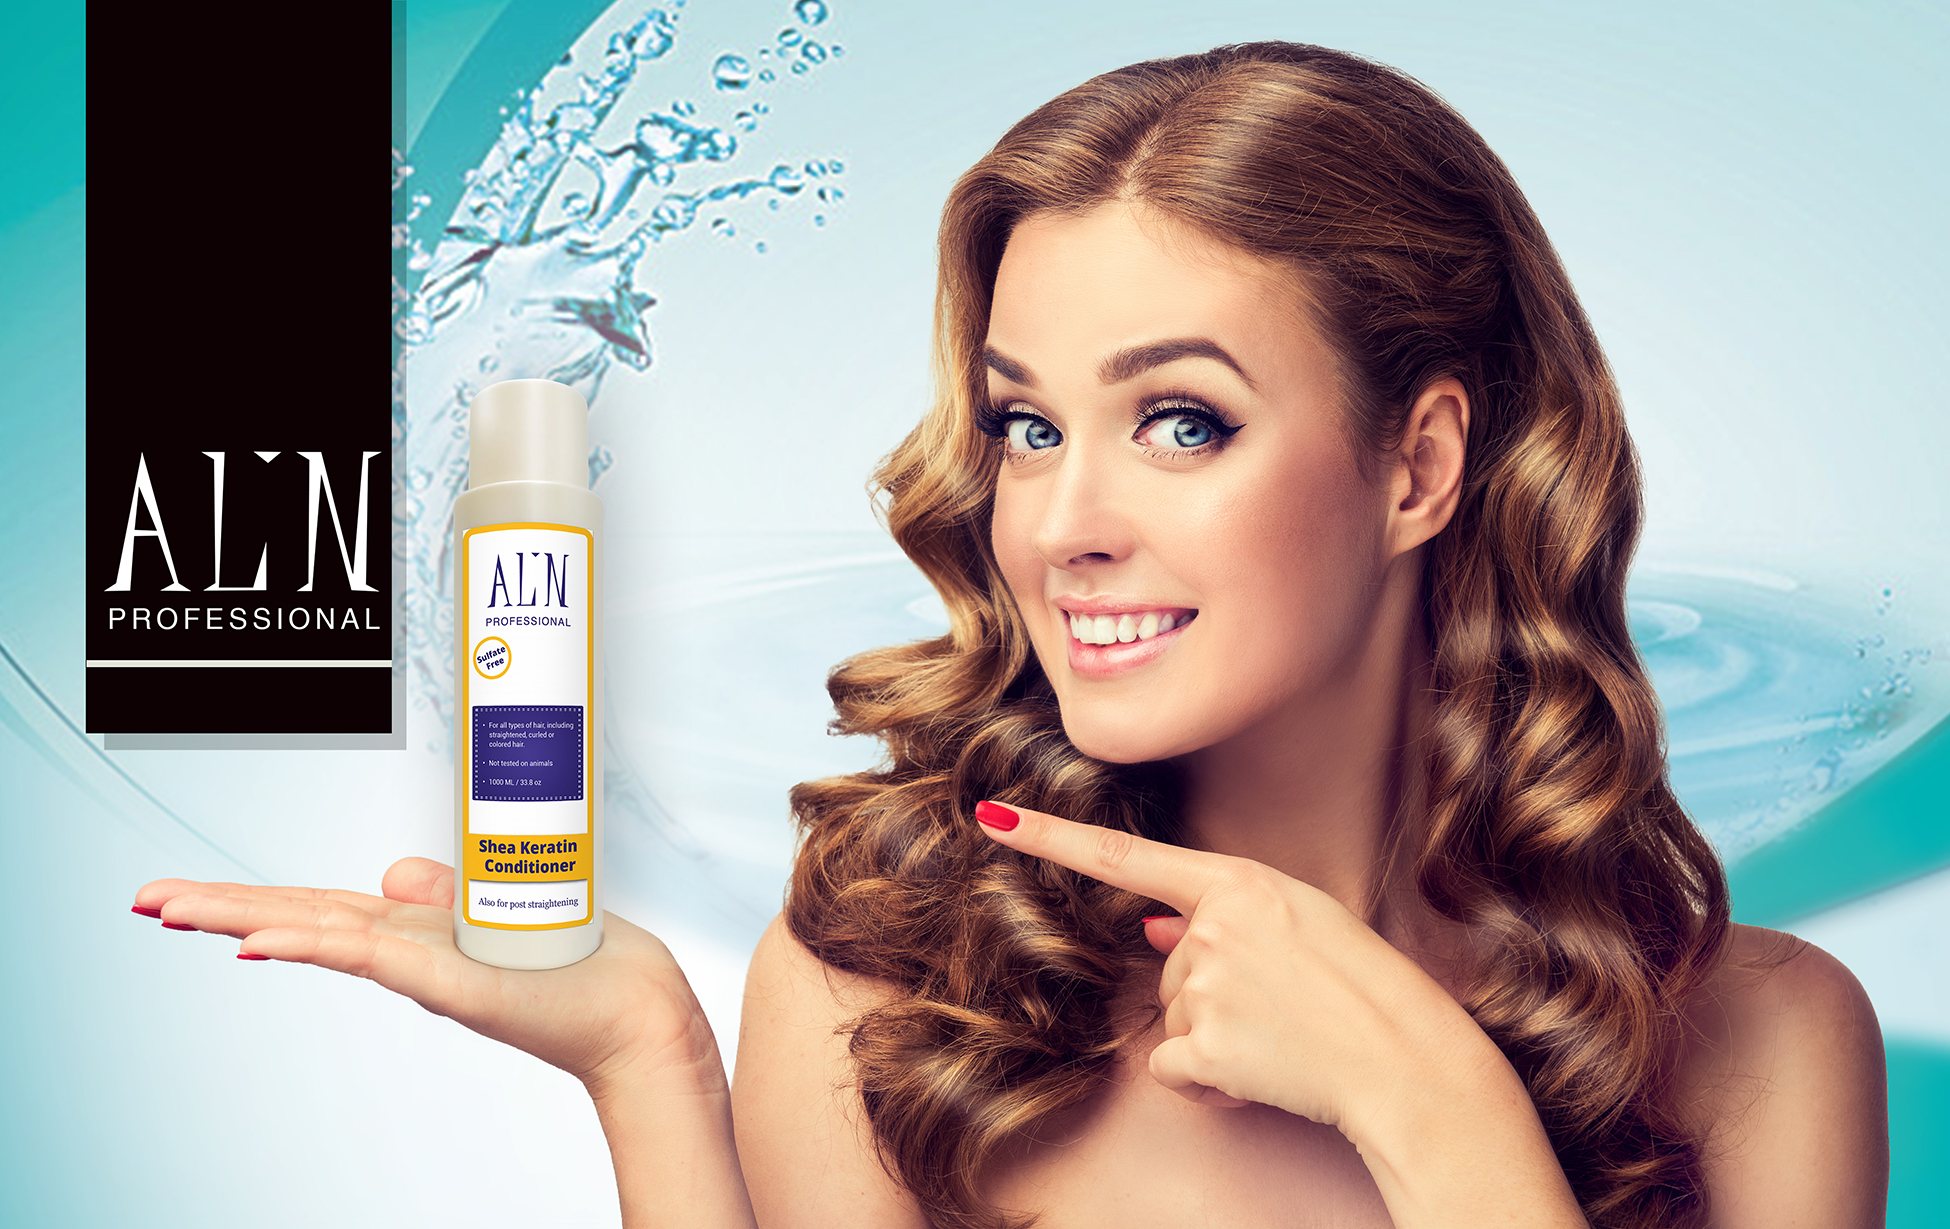 alin professional hair products